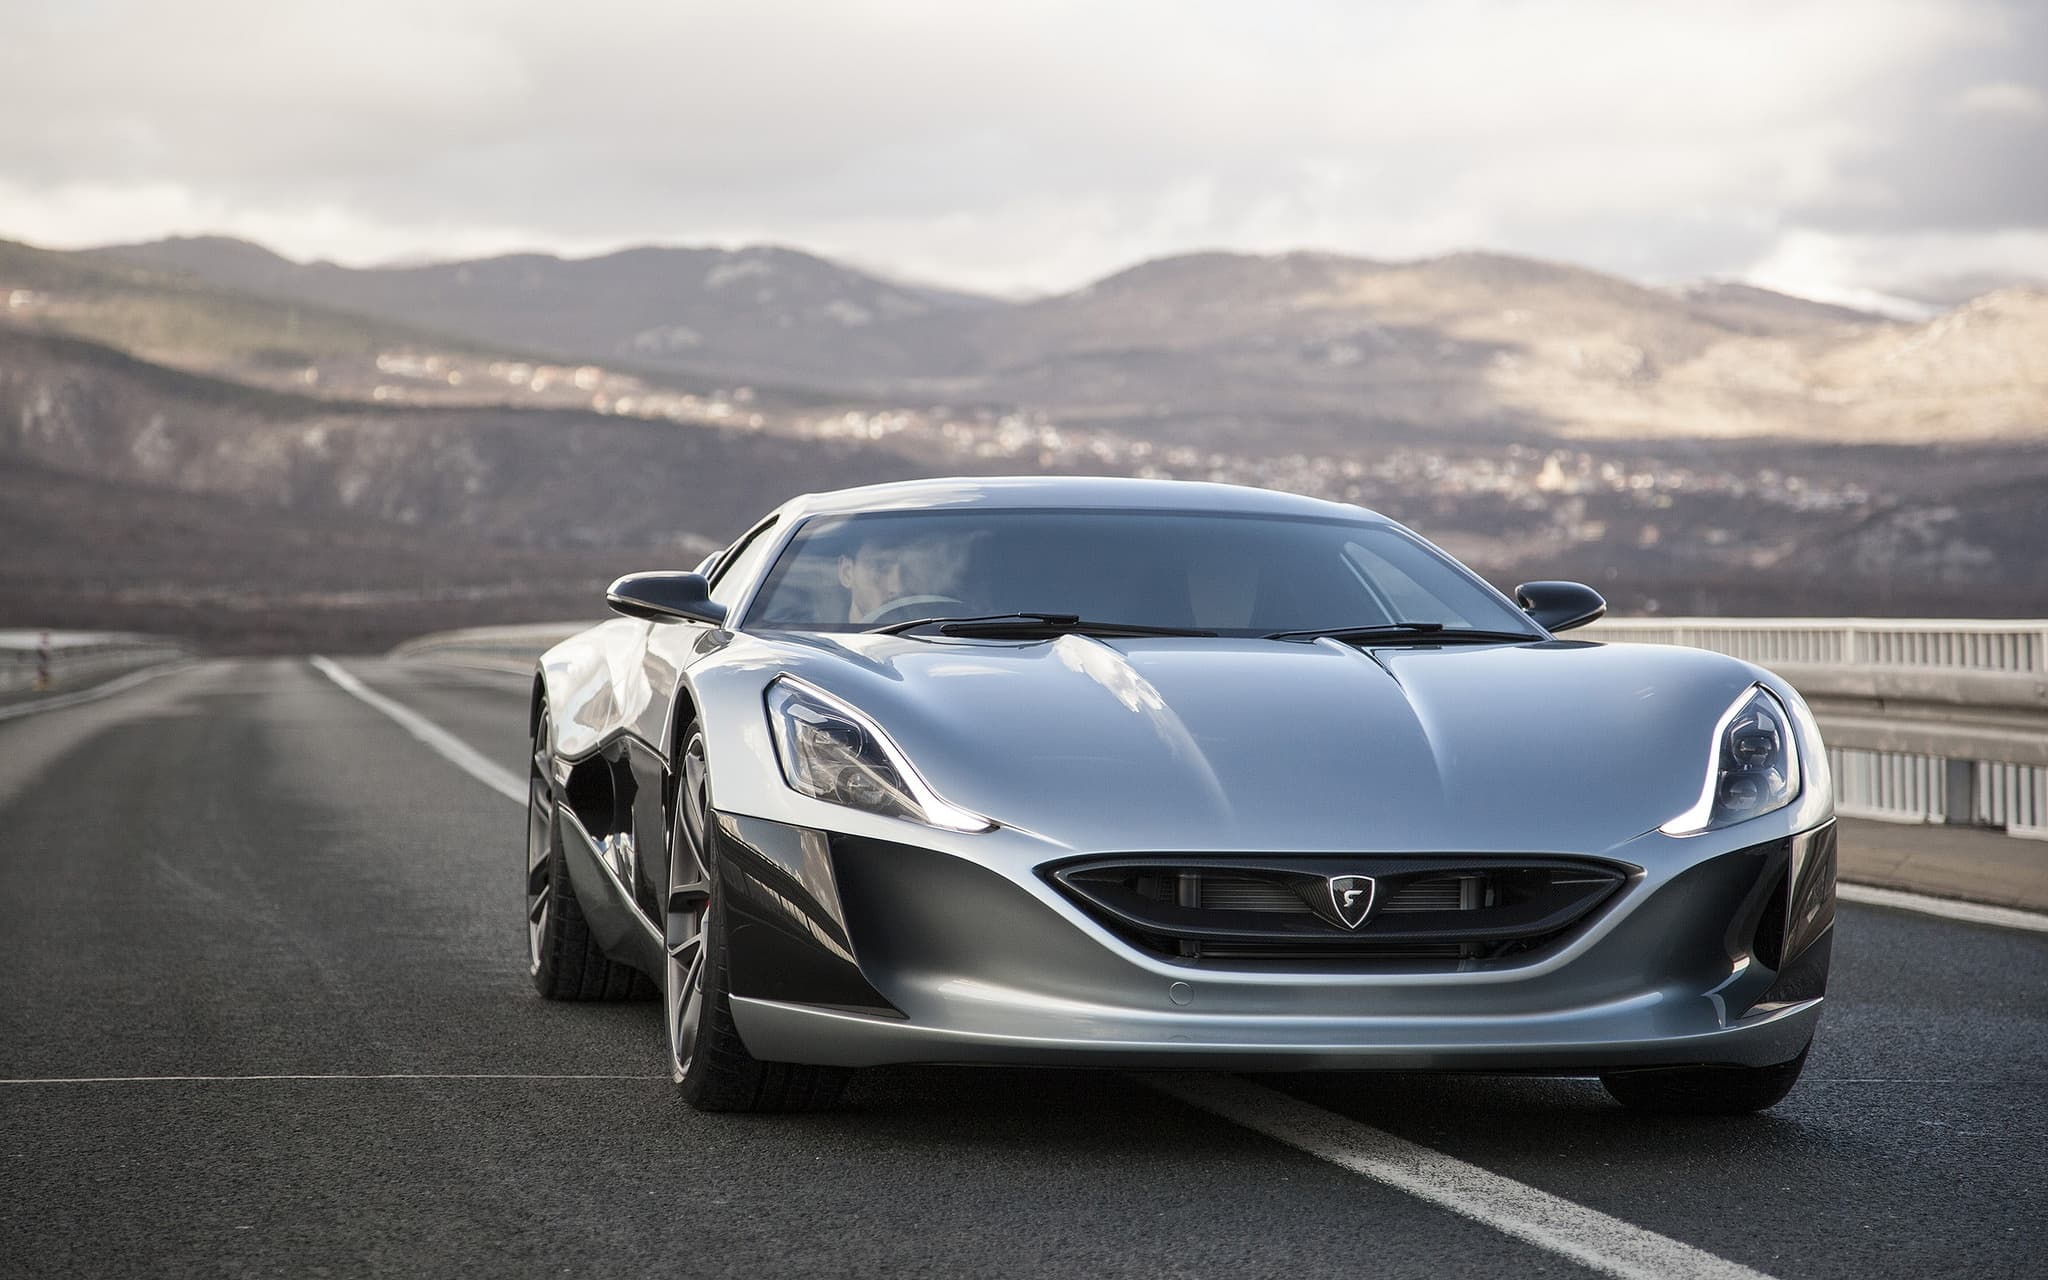 Rimac Concept One 2016 High Quality Wallpapers